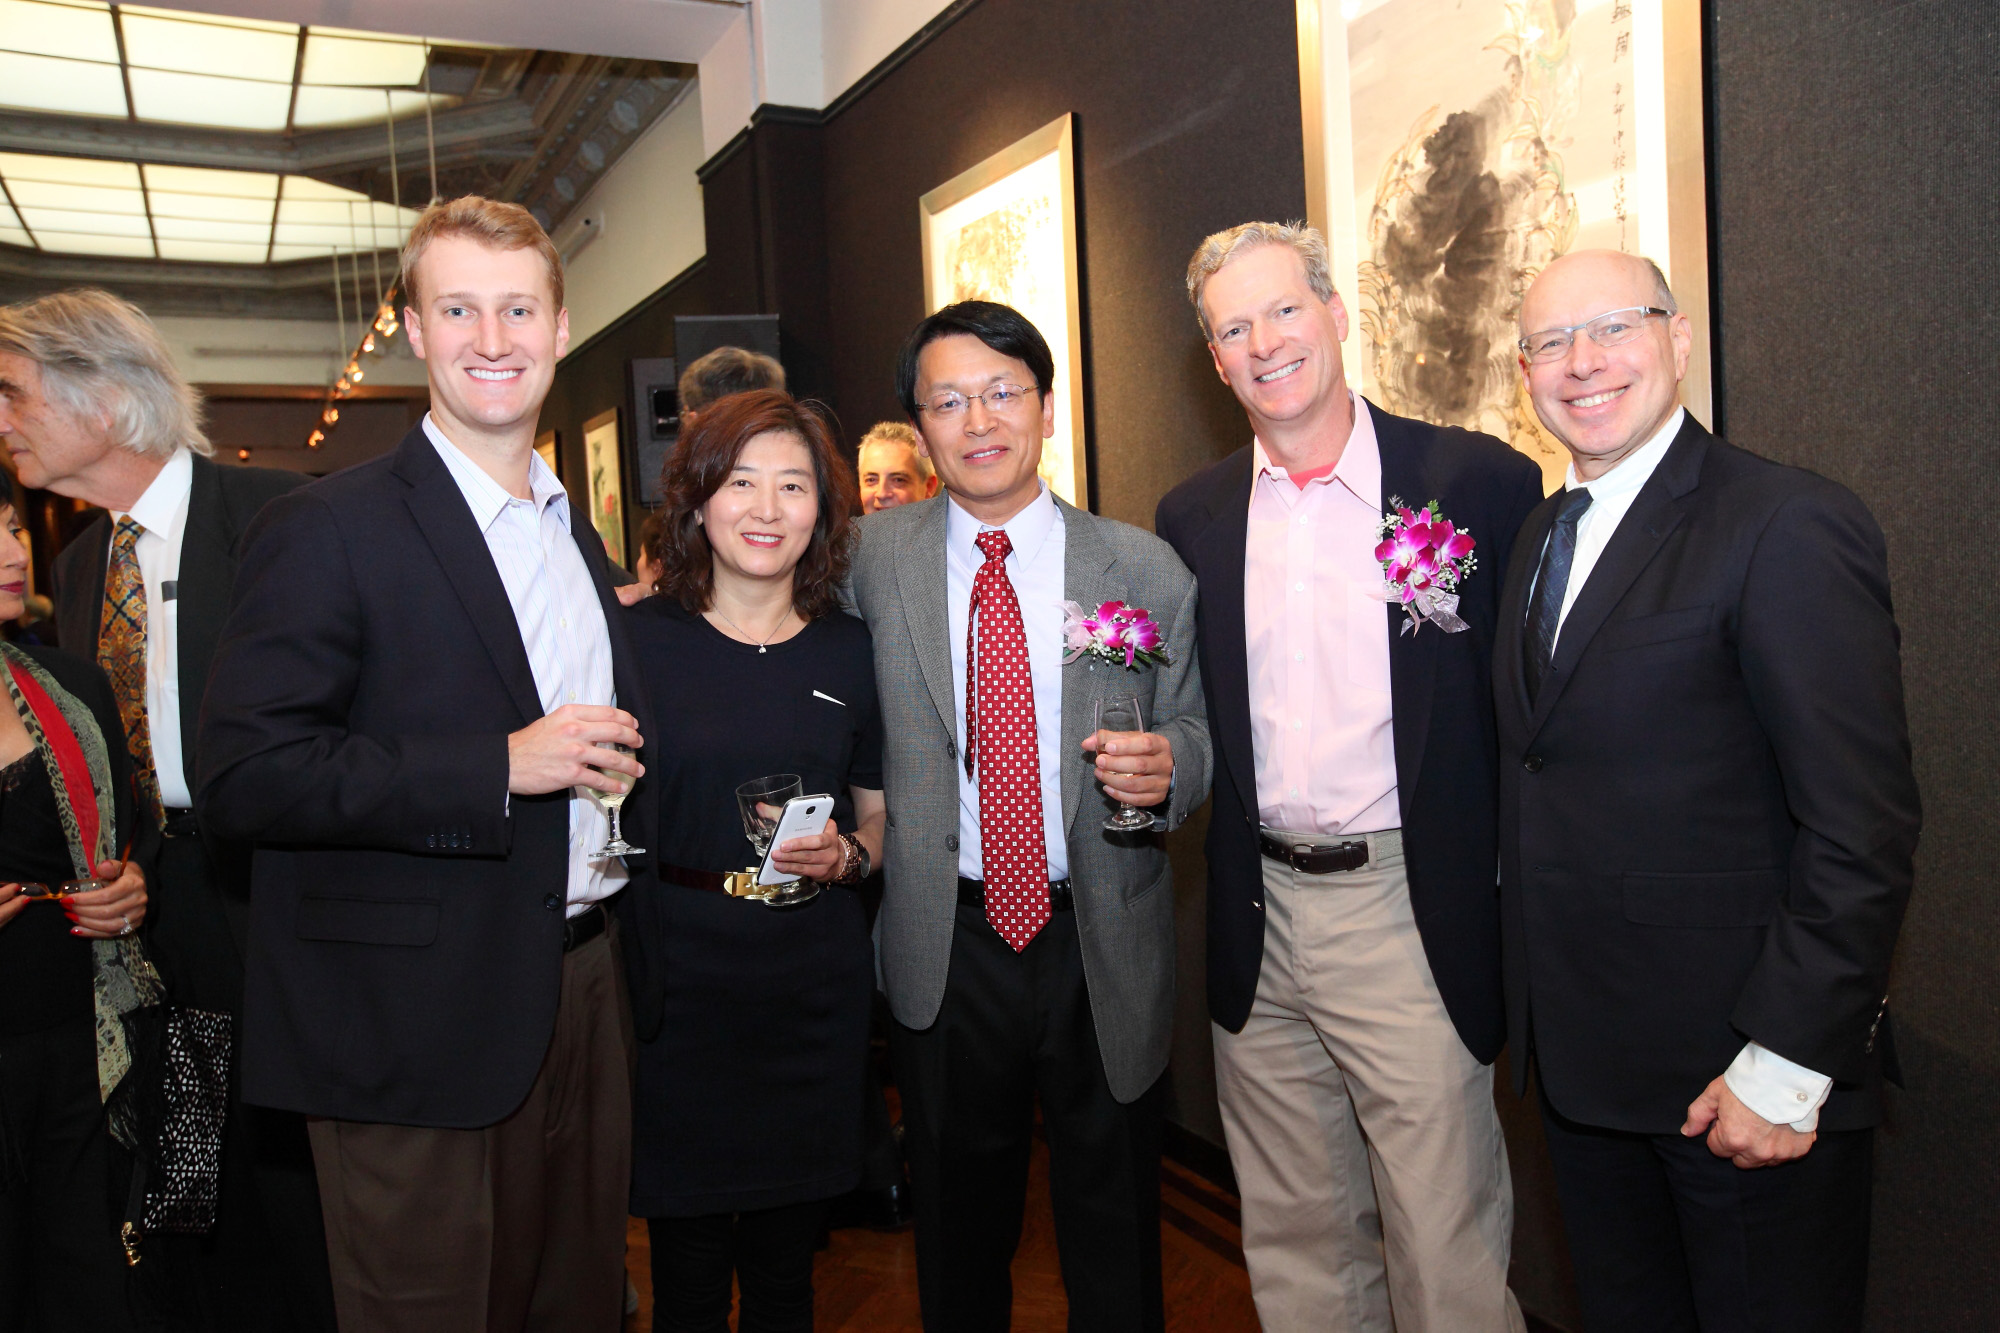 Xinle Ma with Steven Rockefeller at Nati